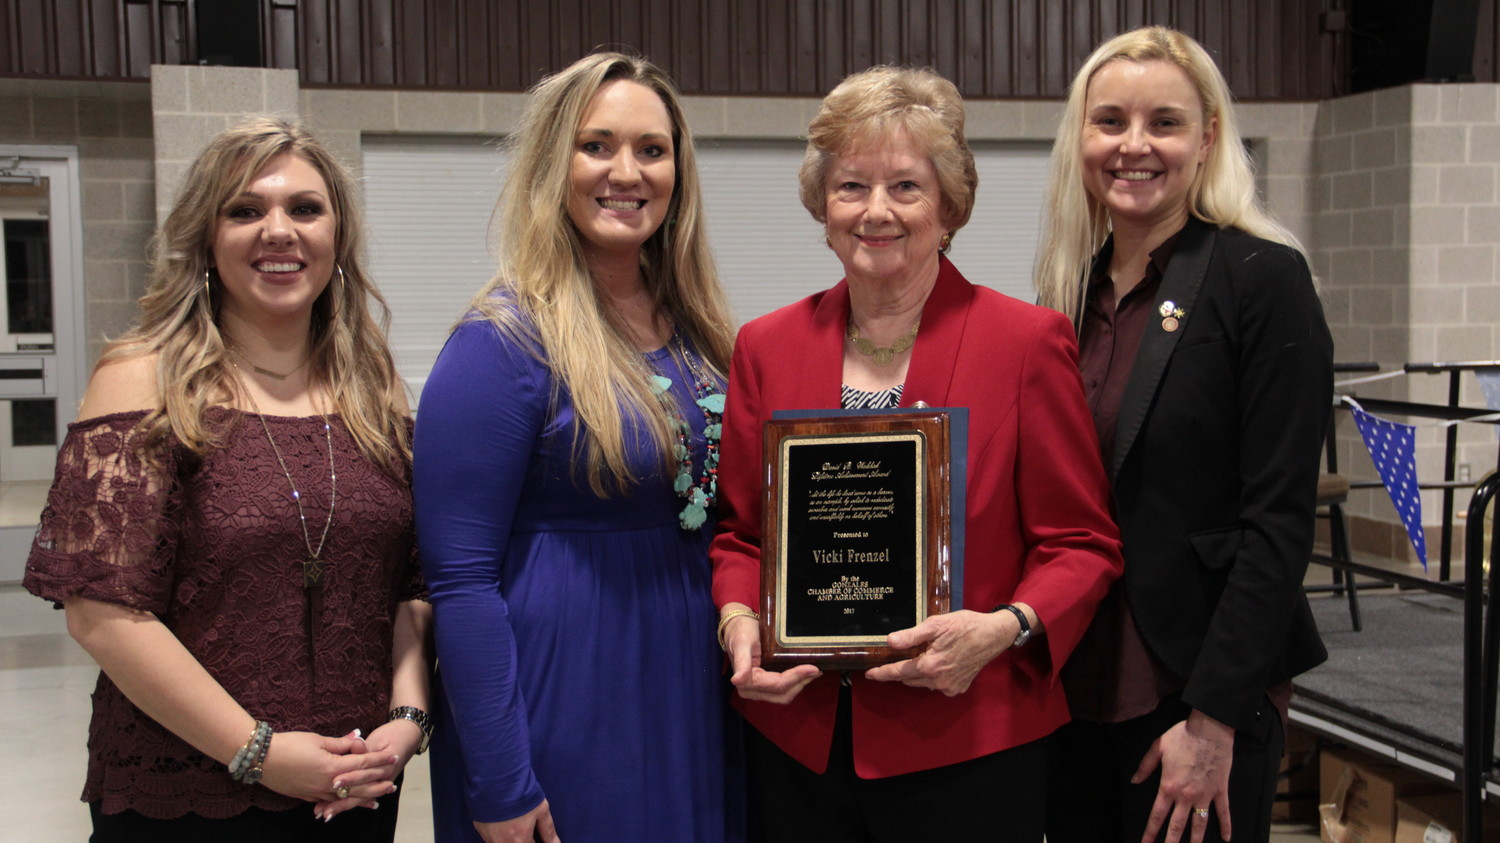 Vicki Frenzel was honored with the 2018 David B. Walshak Lifetime Achievement during the Gonzales Chamber of Commerce's annual chamber banquet.